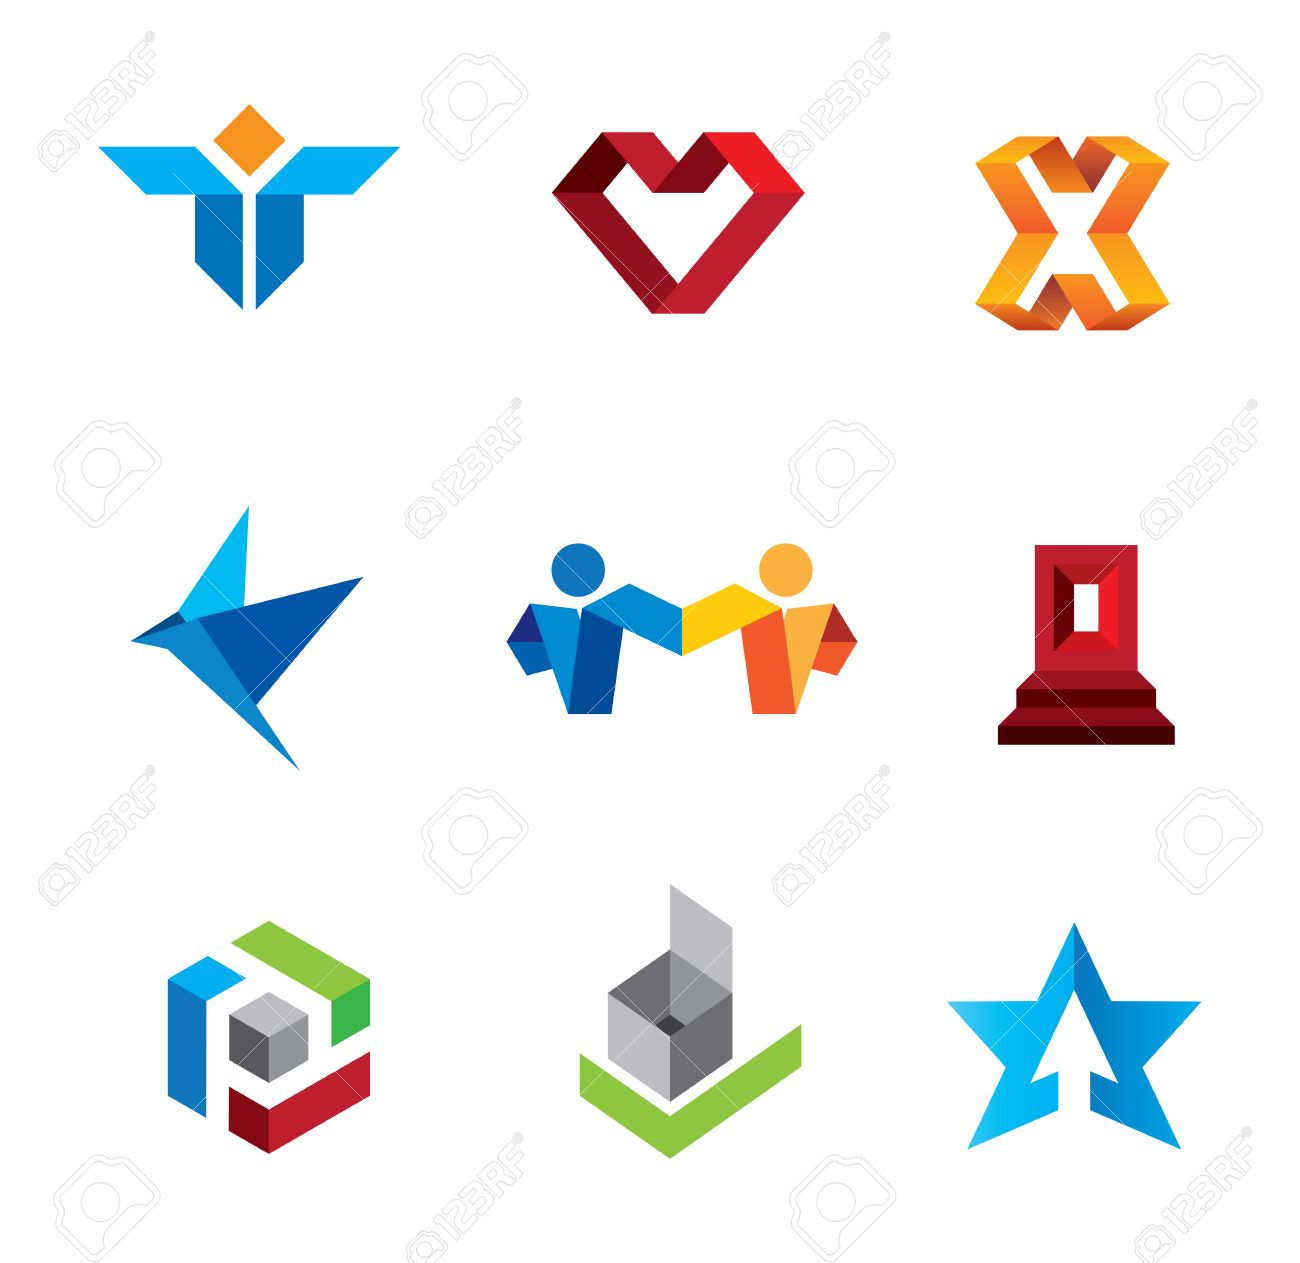 Fold symbols of human creativity and innovation genius logo fold symbols of human creativity and innovation genius logo template stock vector 23283608 biocorpaavc Images